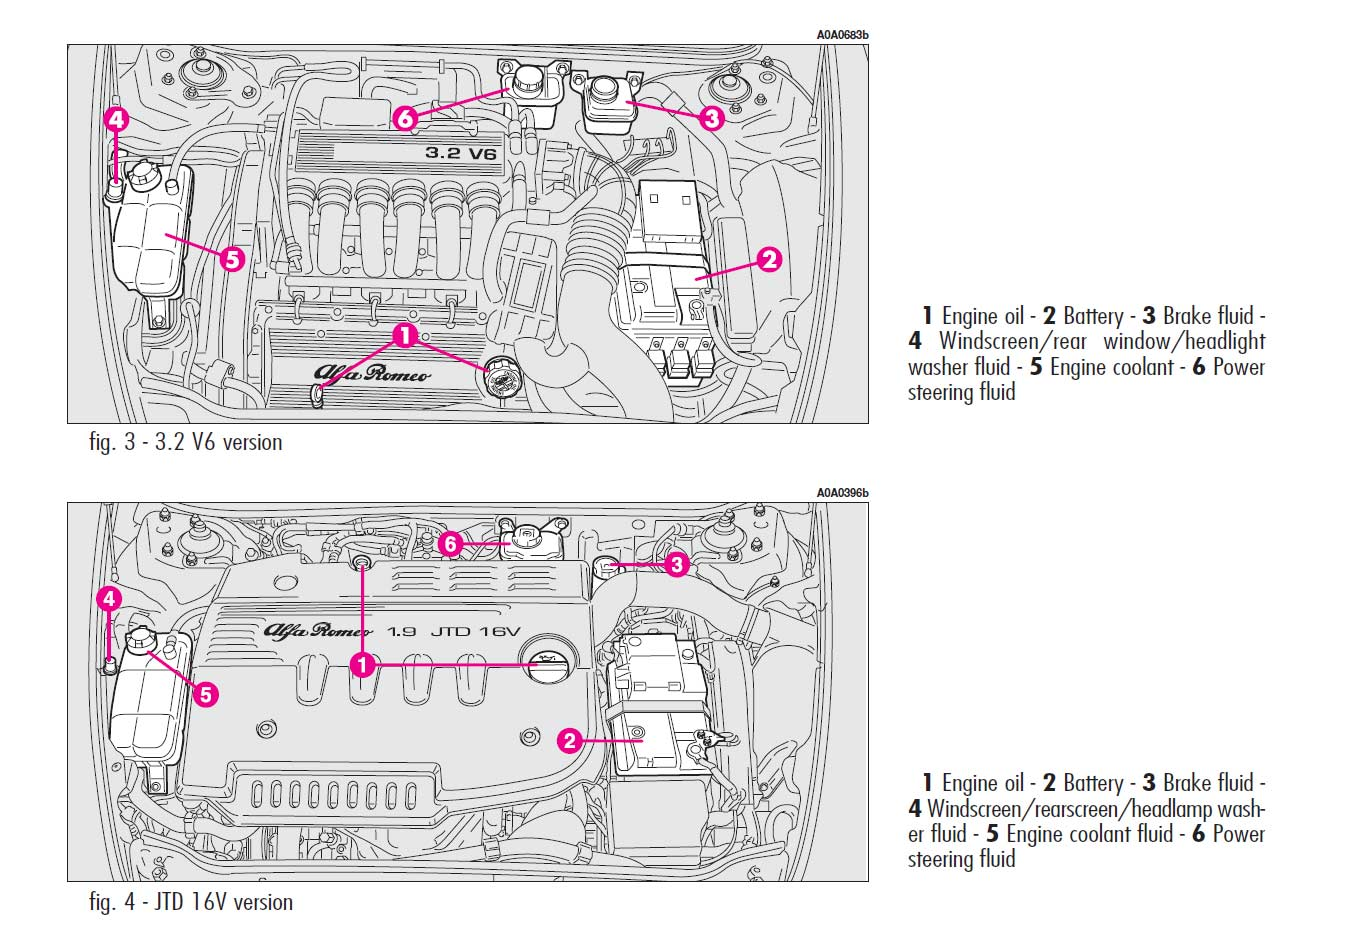 Location of the car battery for the Alfa Romeo GT V6 and 1.9 JTD